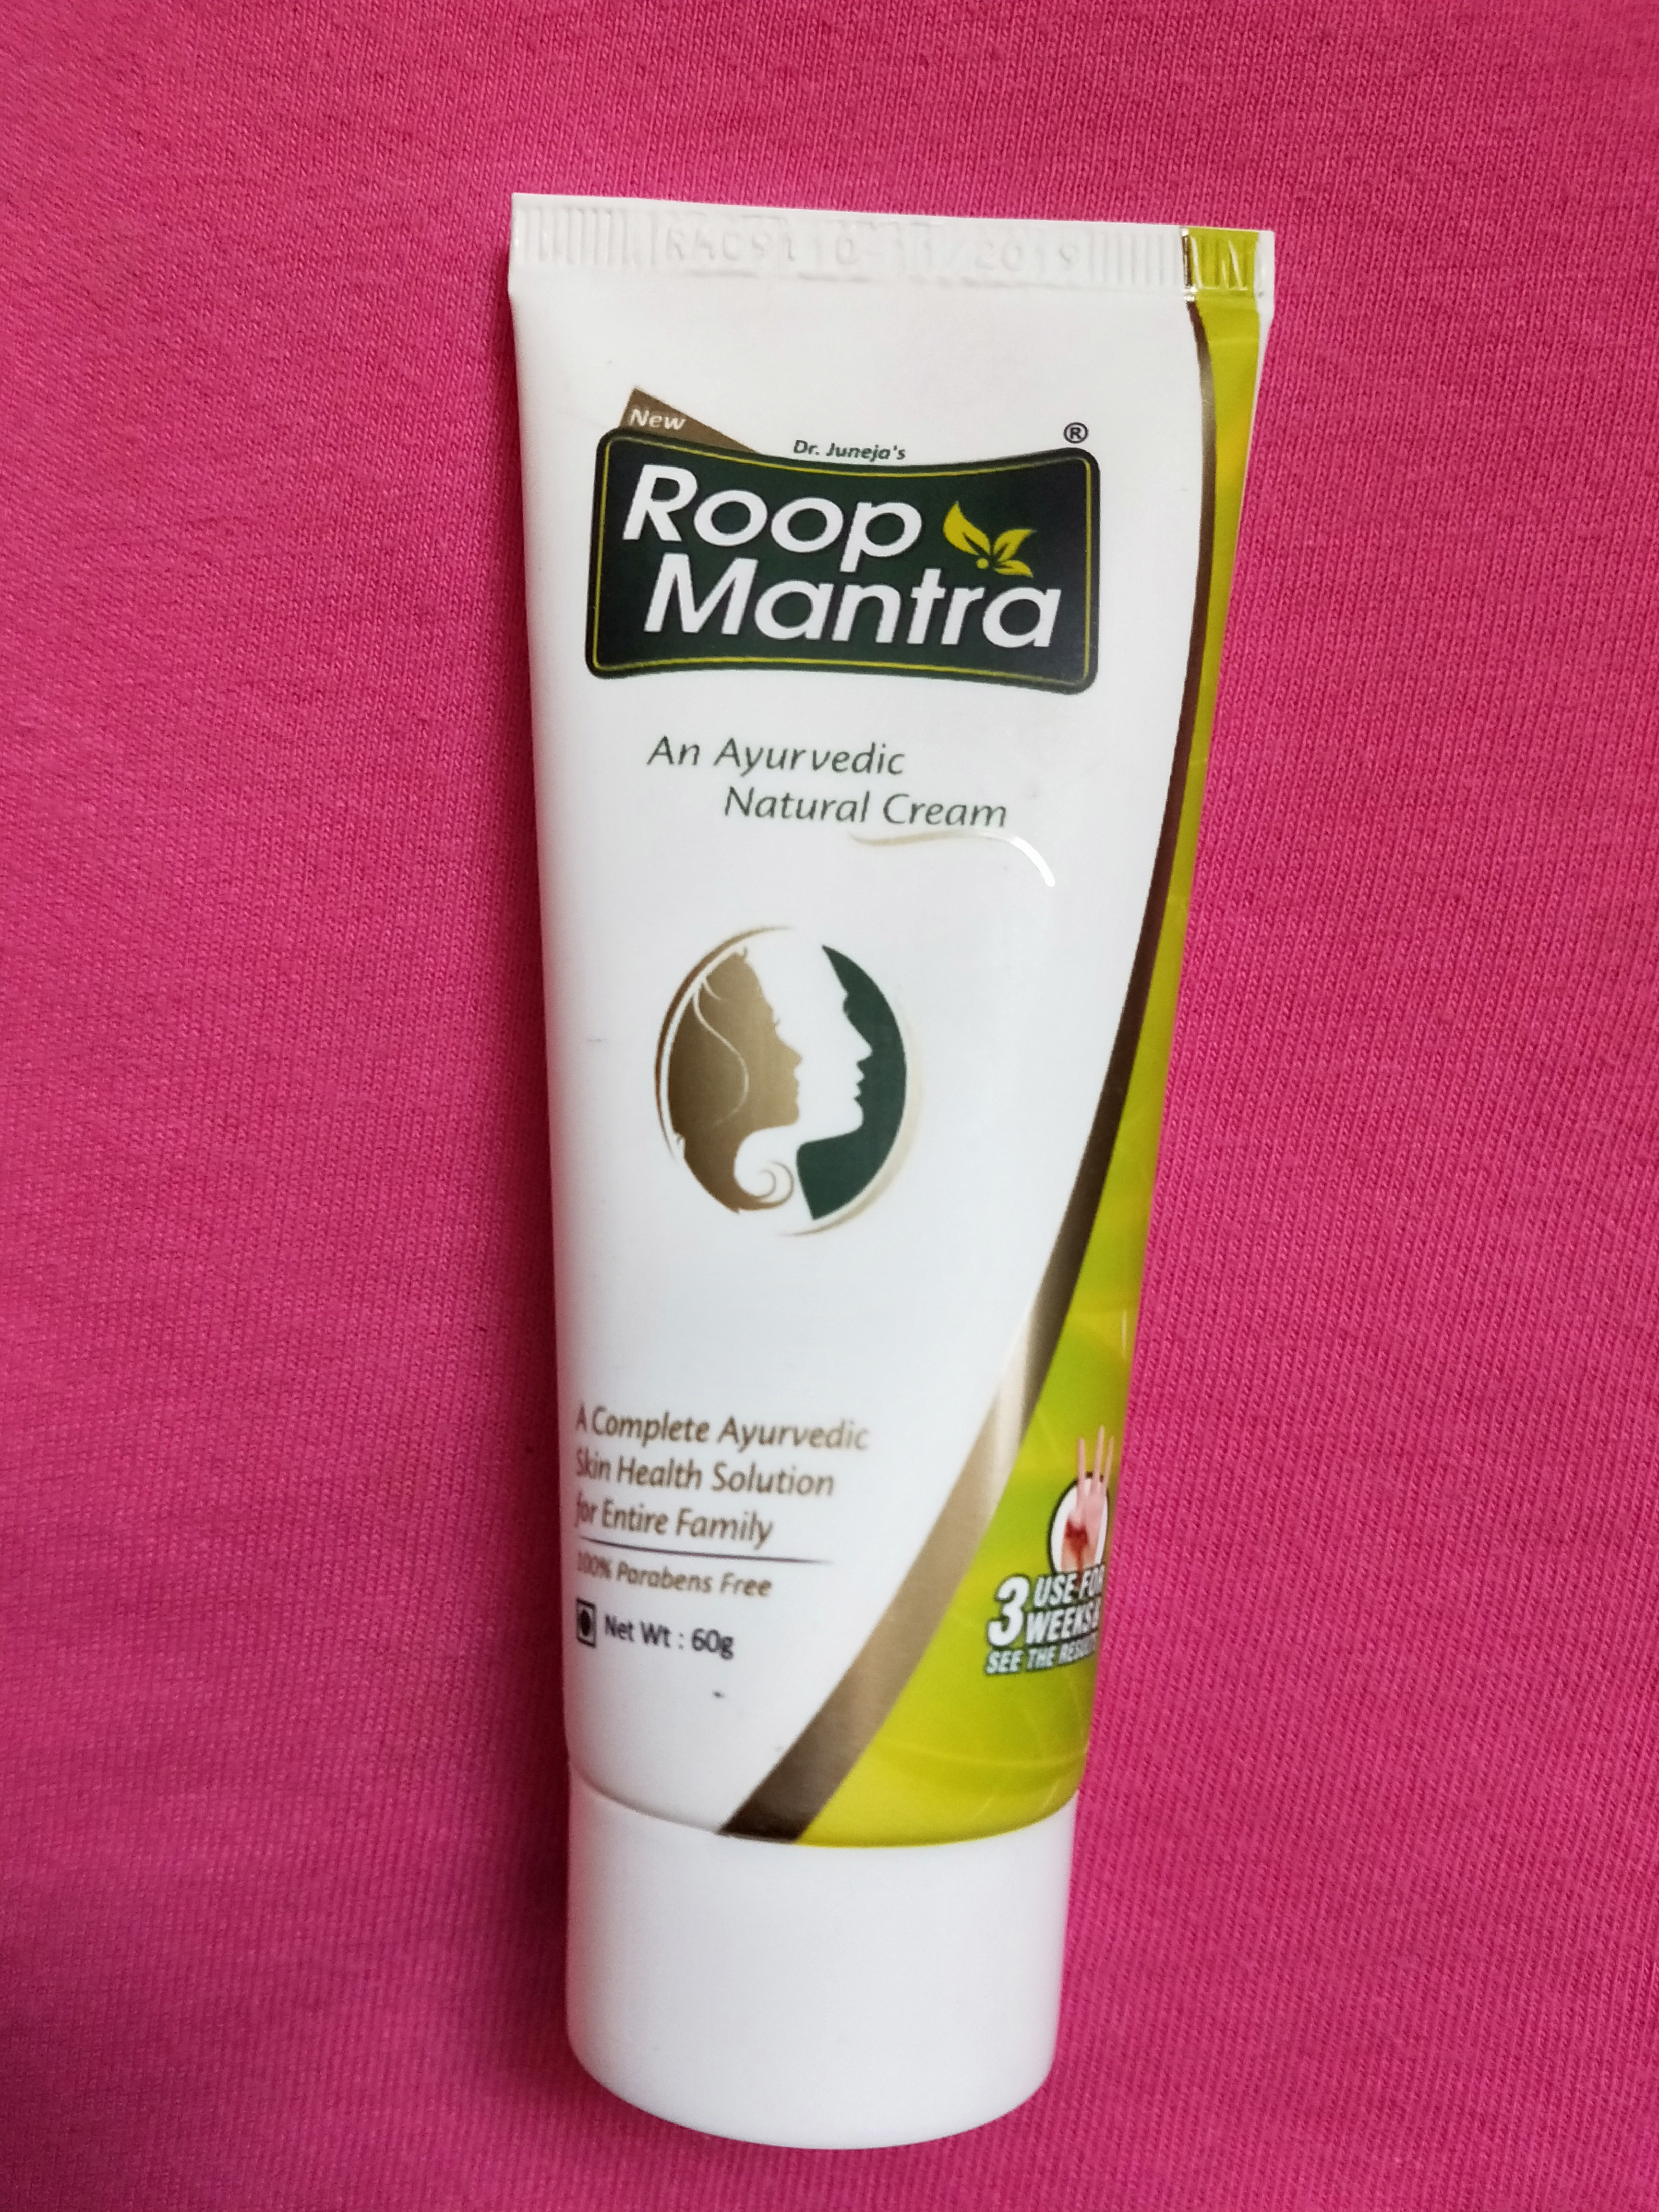 Roop Mantra Ayurvedic Medicinal Face Cream pic 3-Ayurvedic Cream to resolve all your skin problems.-By miss_hungry_soul